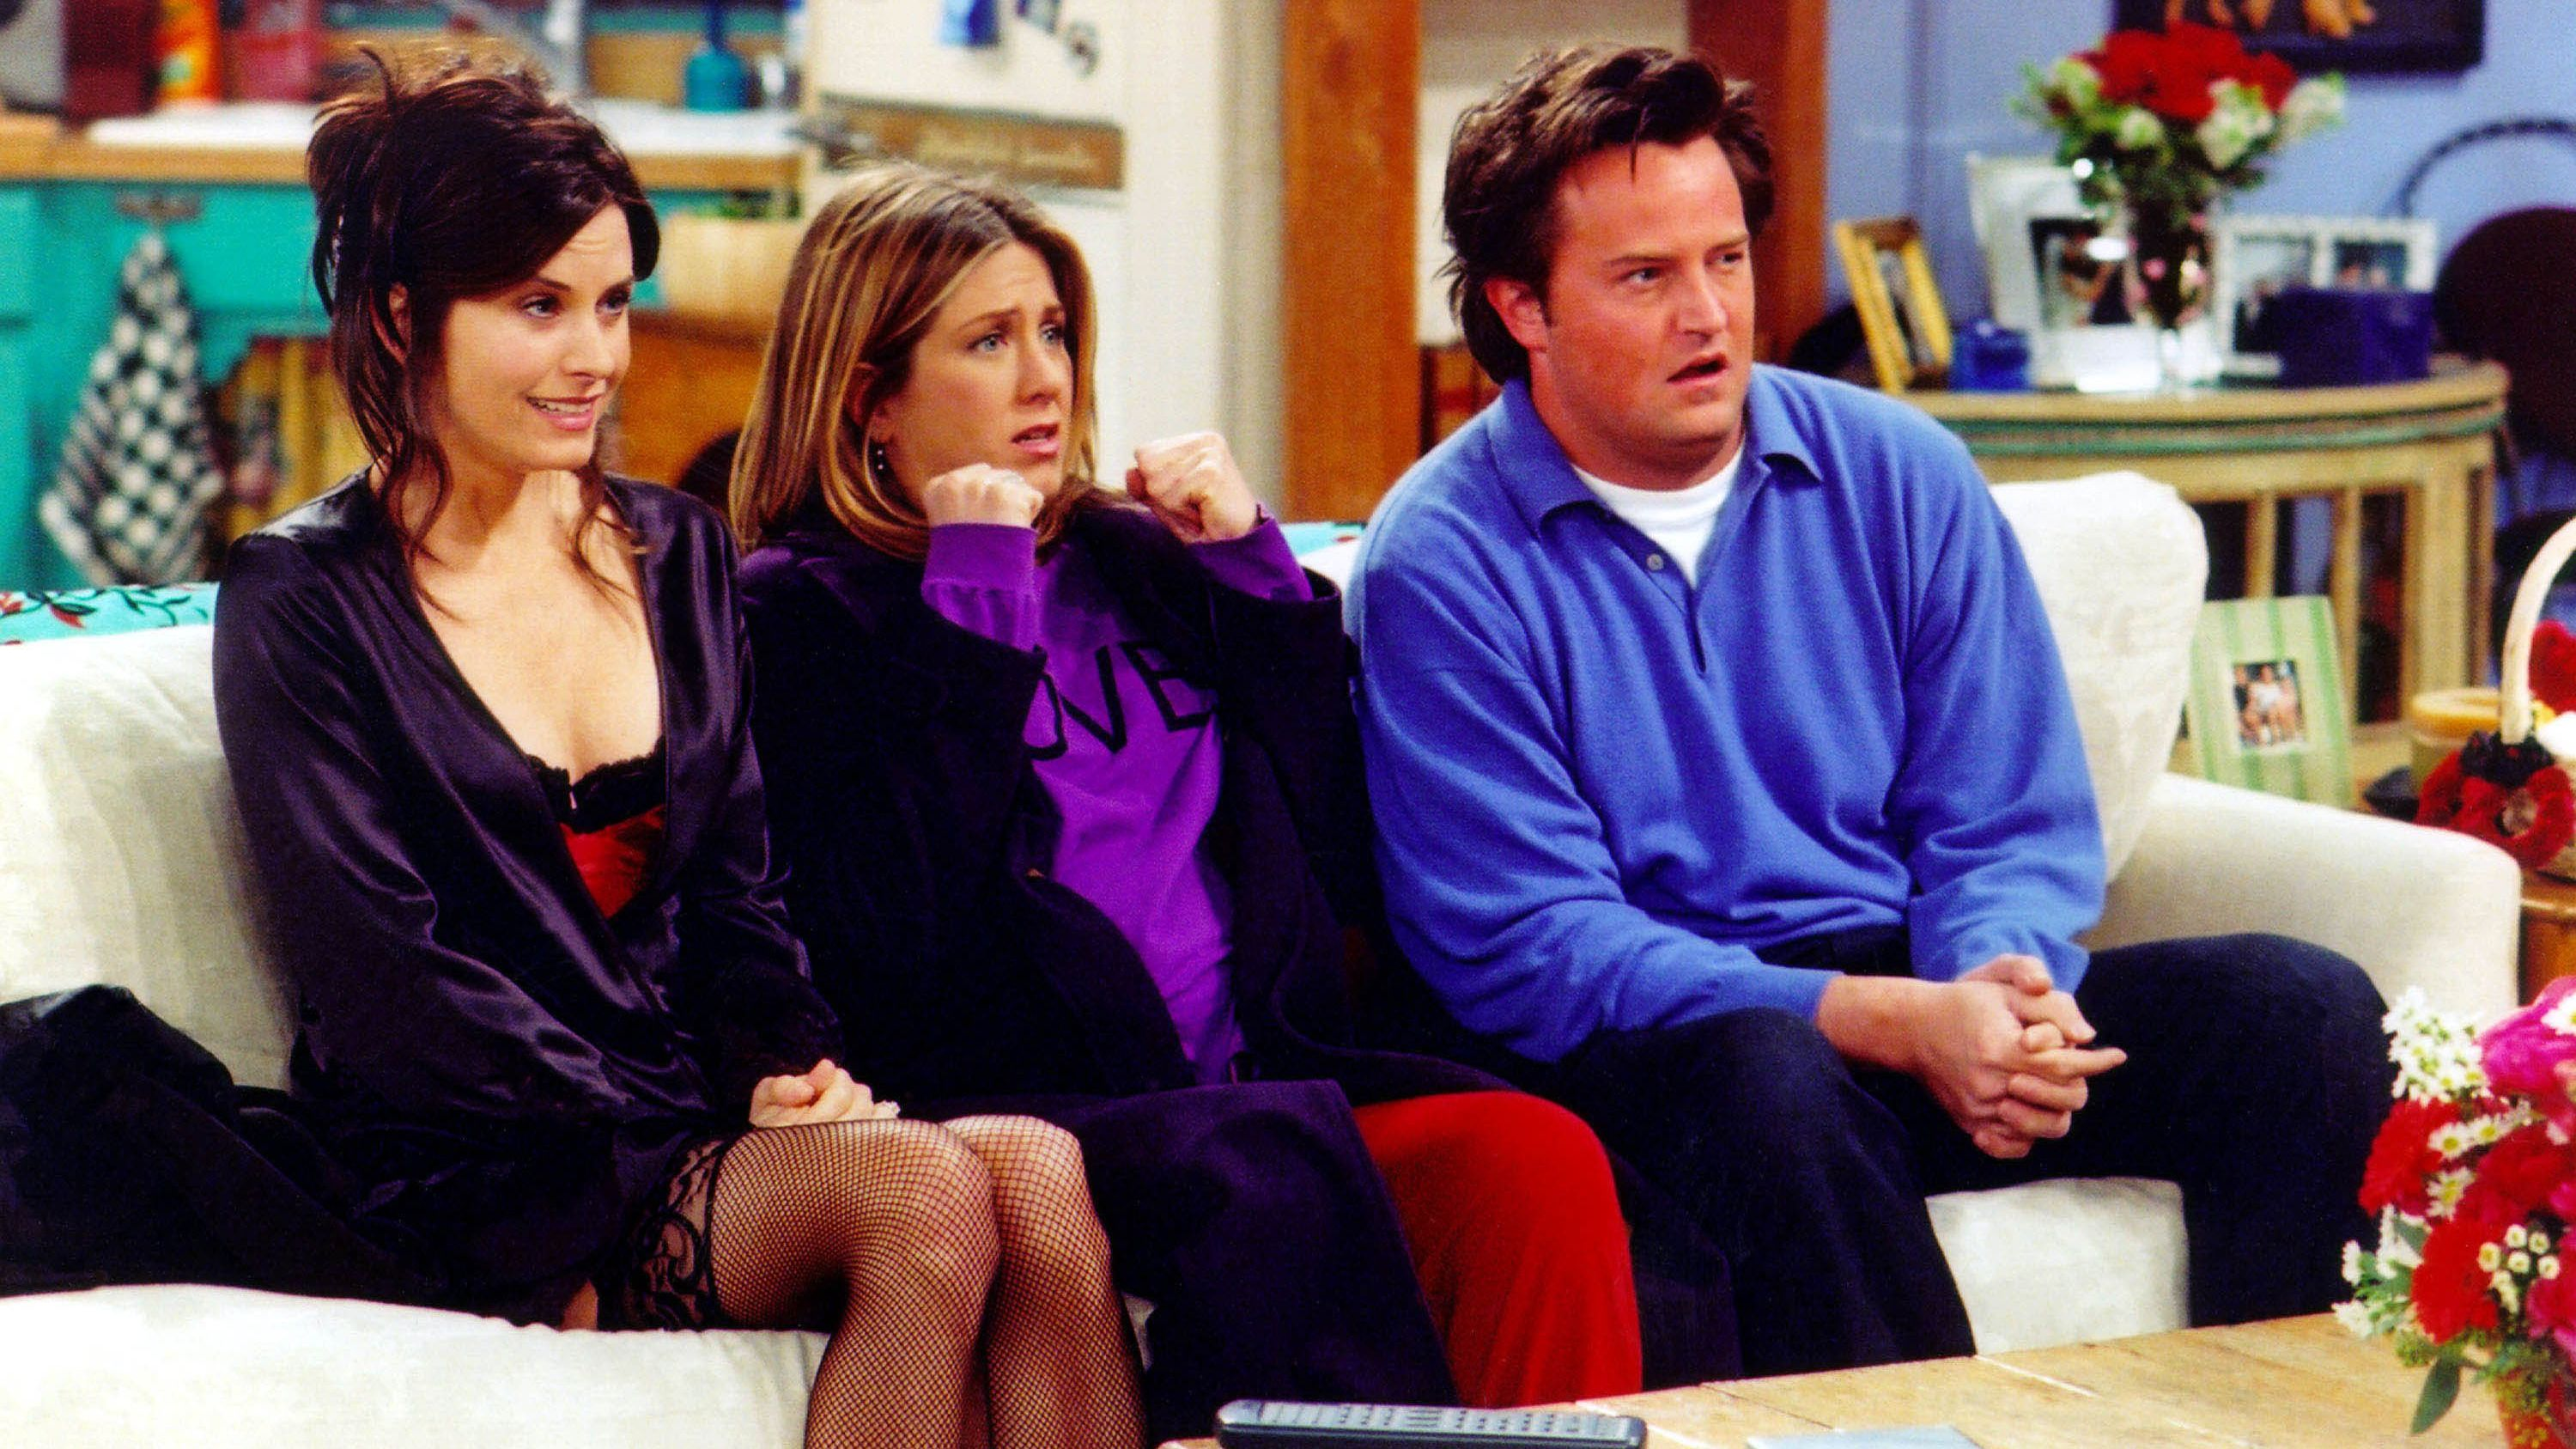 A Company Wants to Pay You $1000 to Watch 25 Hours of Friends